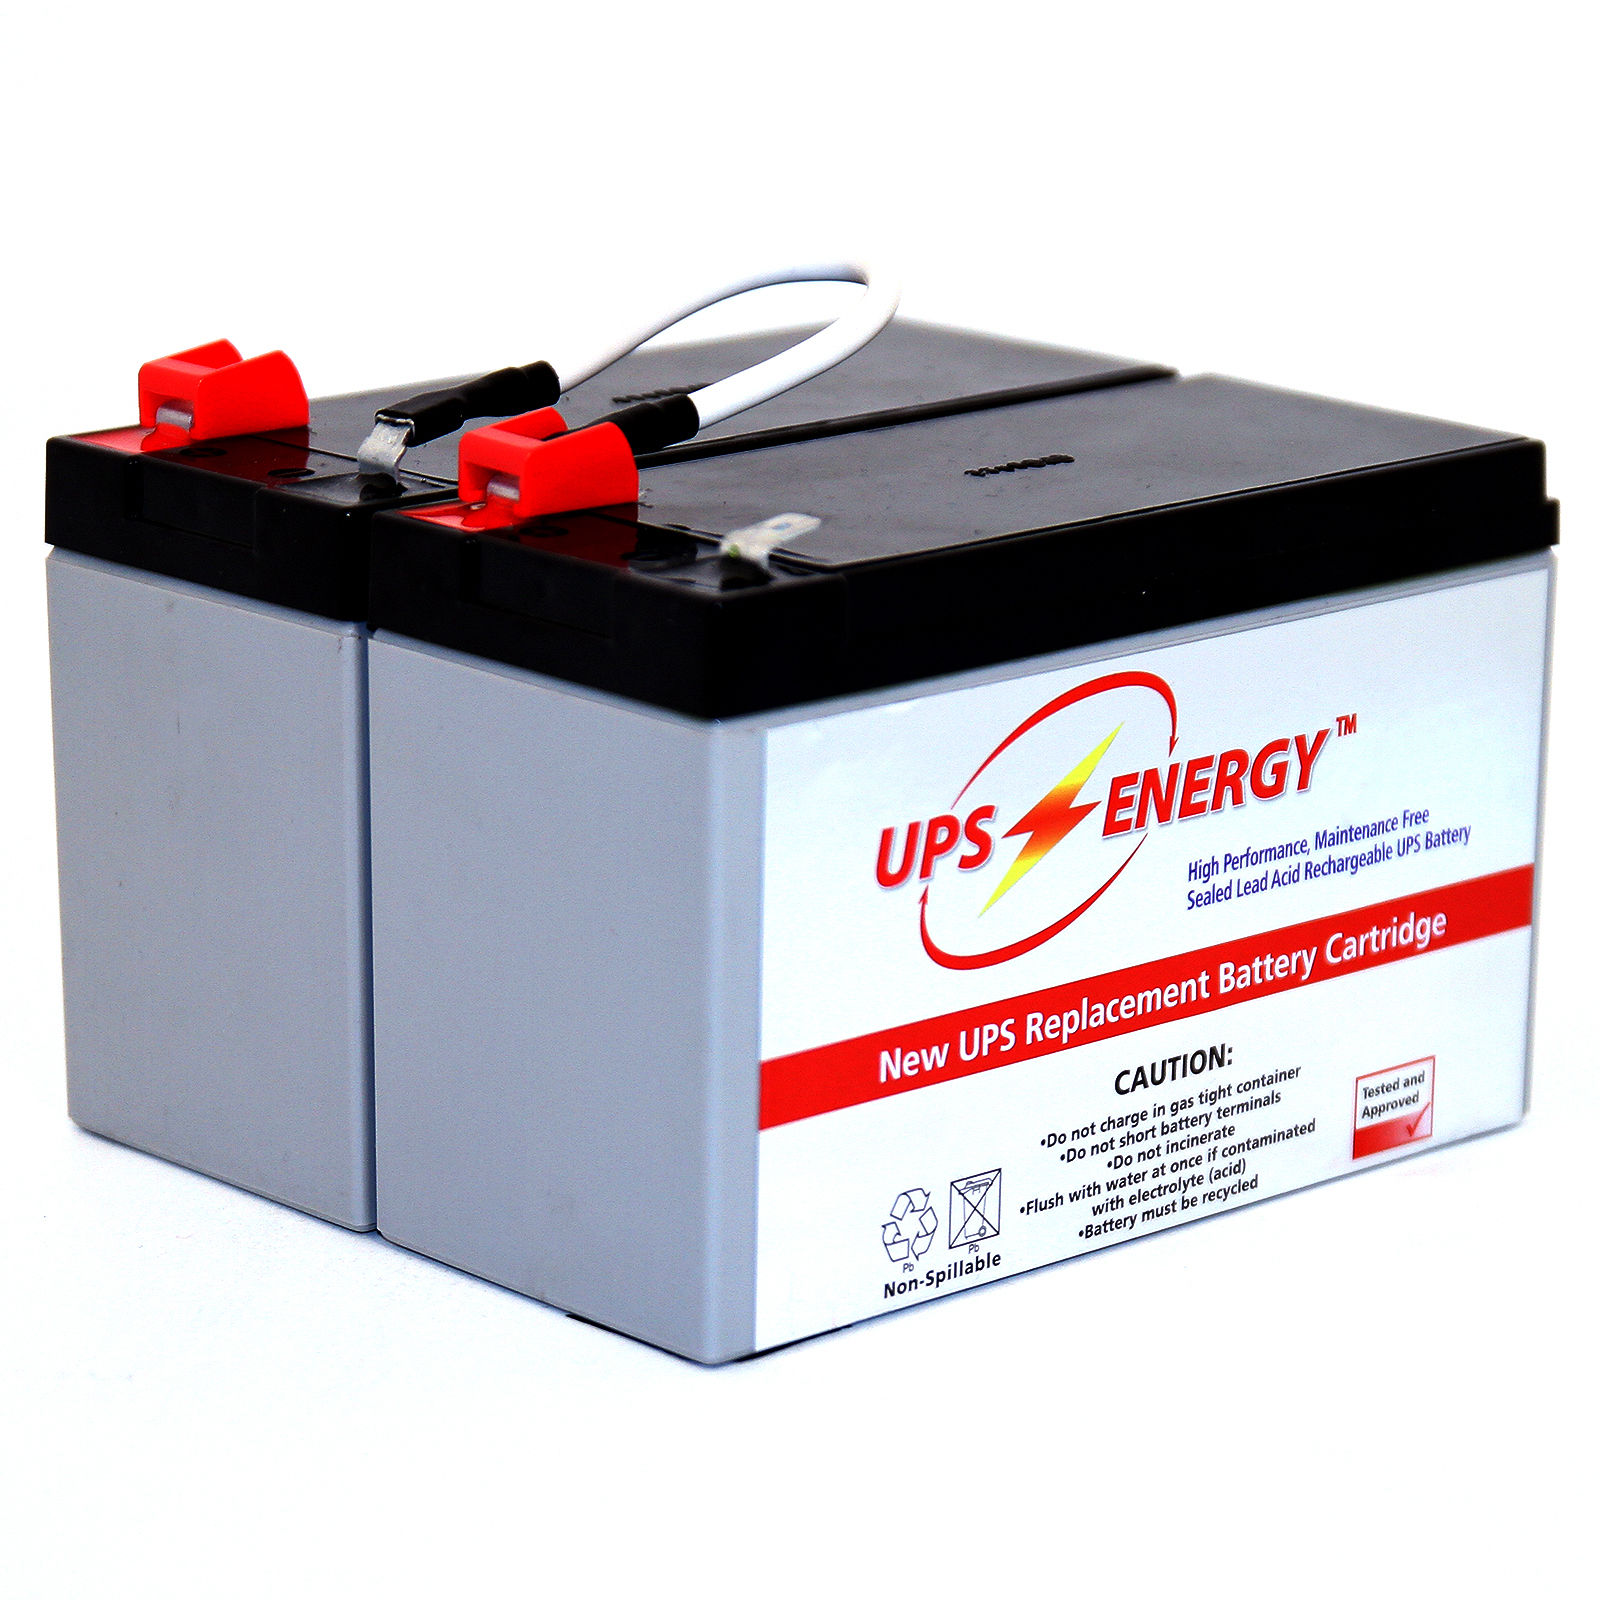 APC RBC6 Compatible Replacement Battery Cartridge 1 Year Warranty